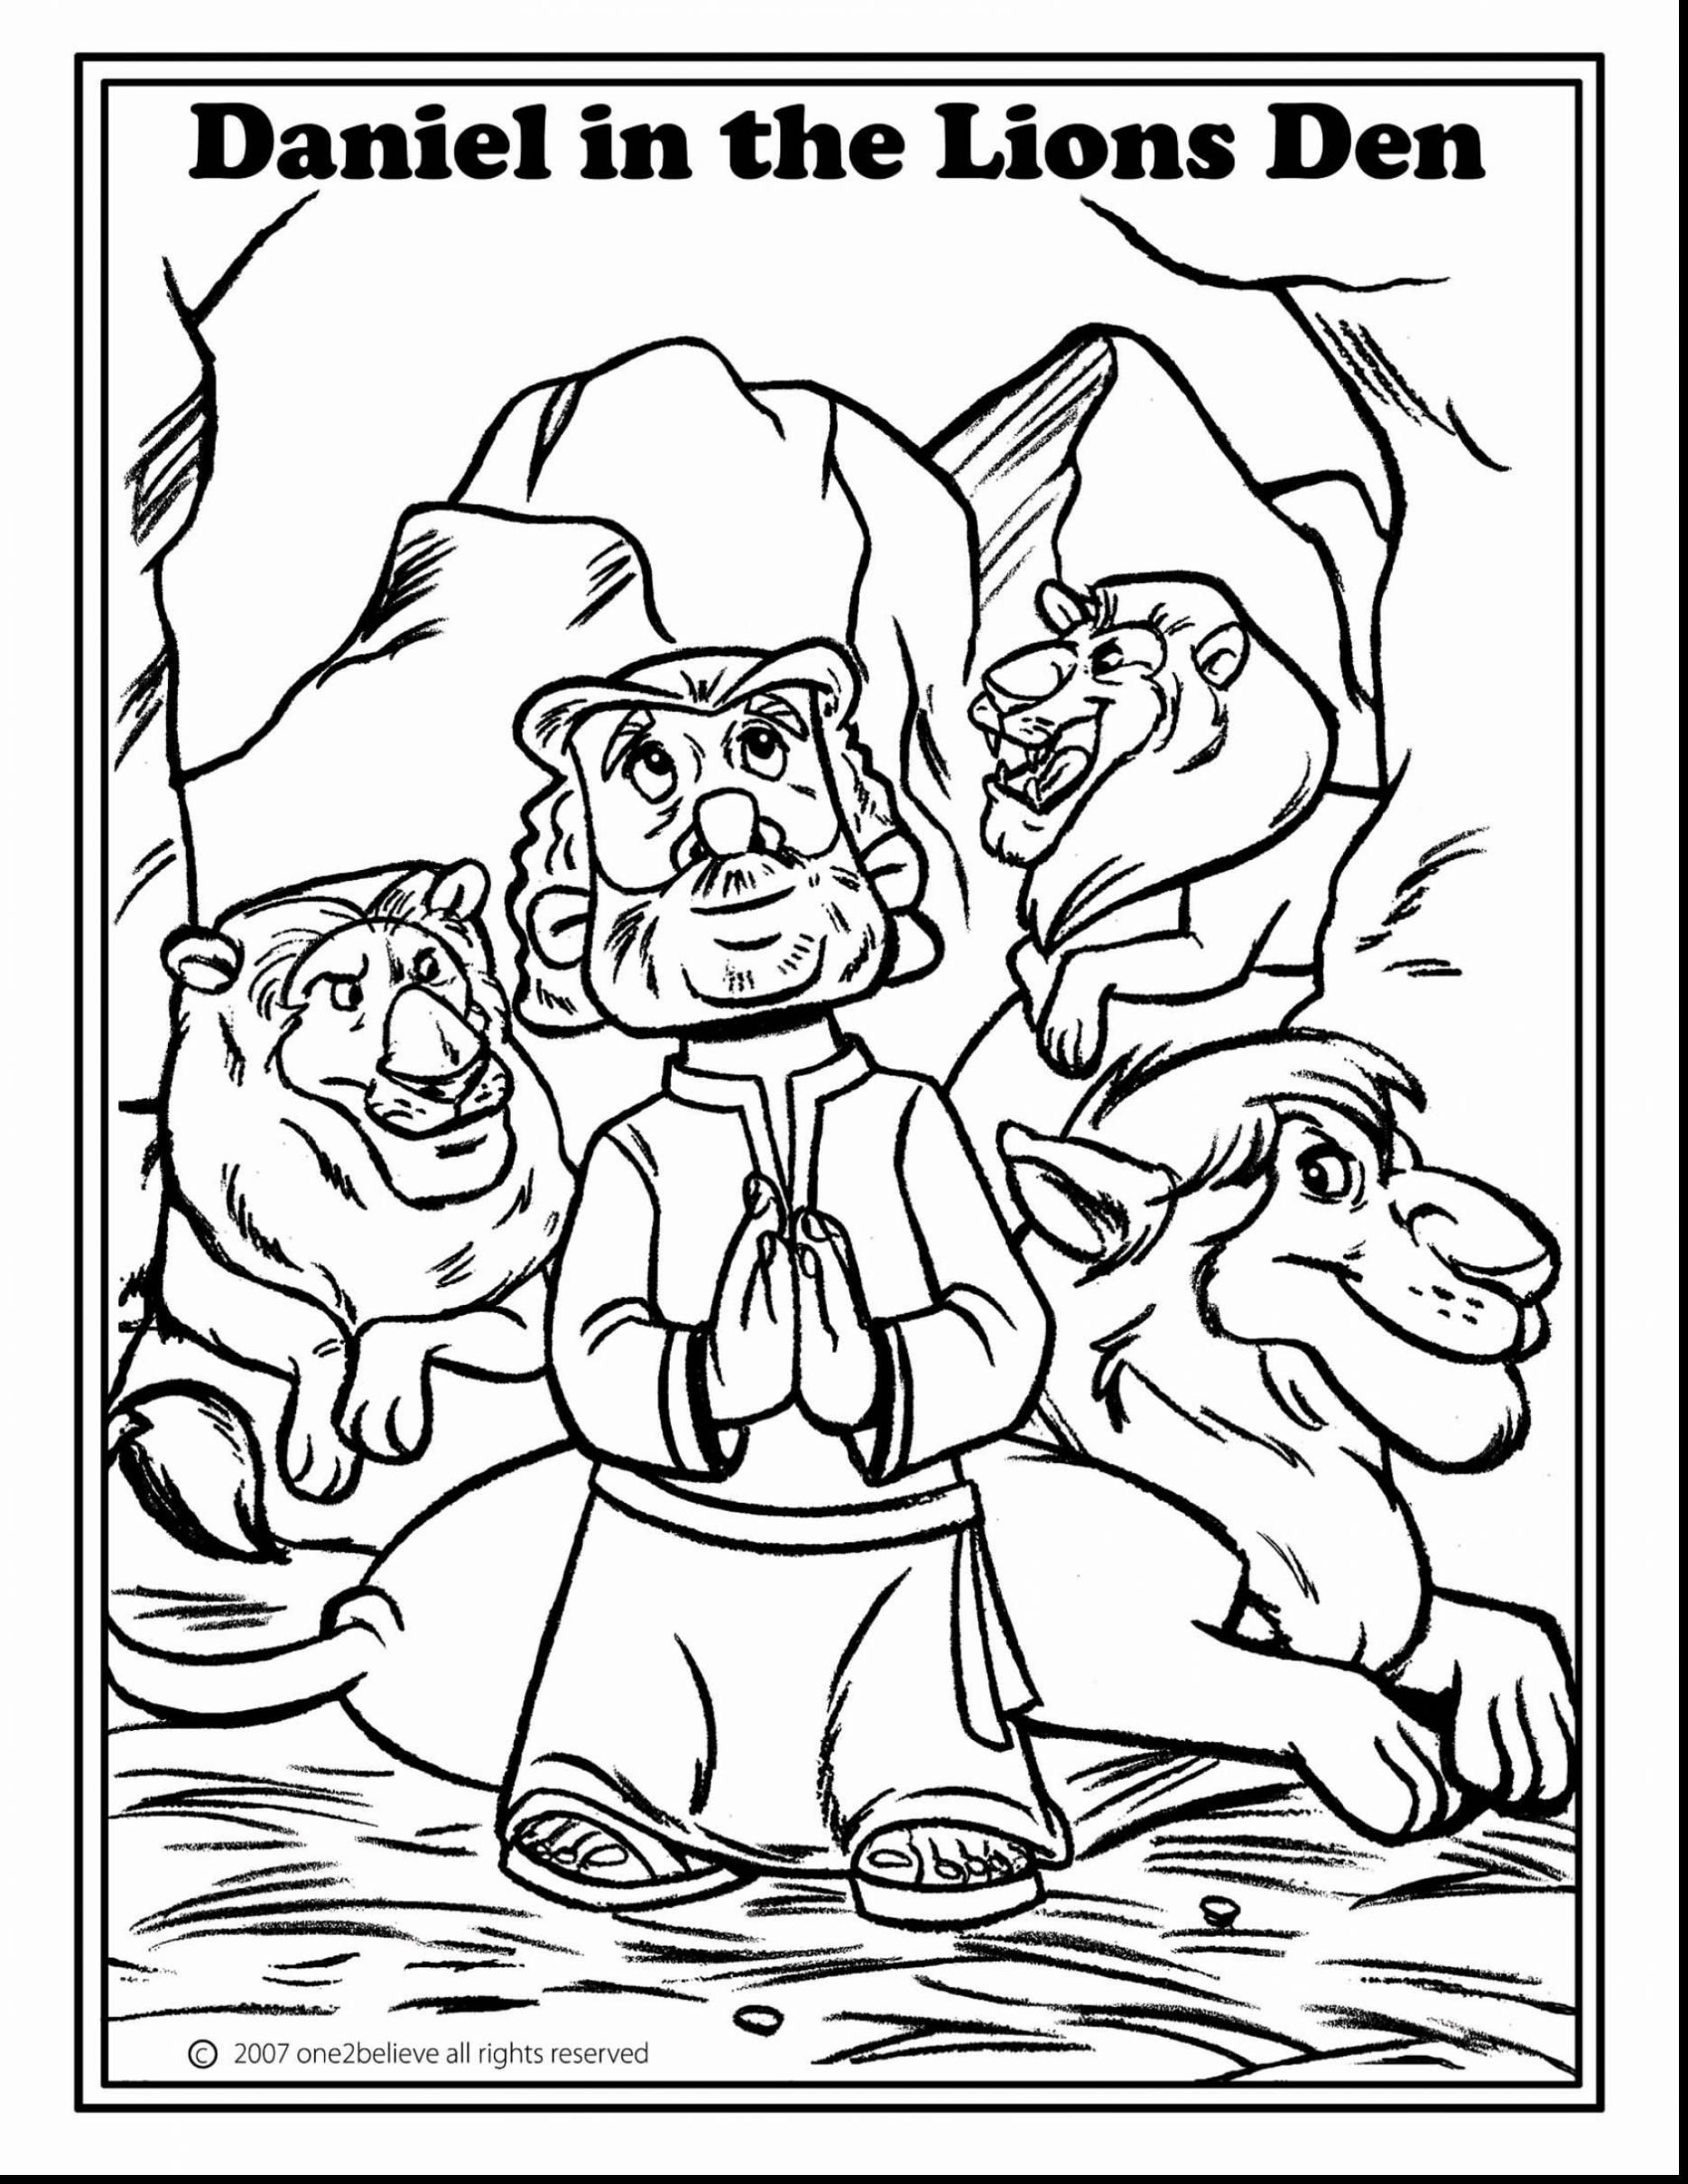 christian color pages 30 kids christian coloring pages collection coloring sheets pages color christian